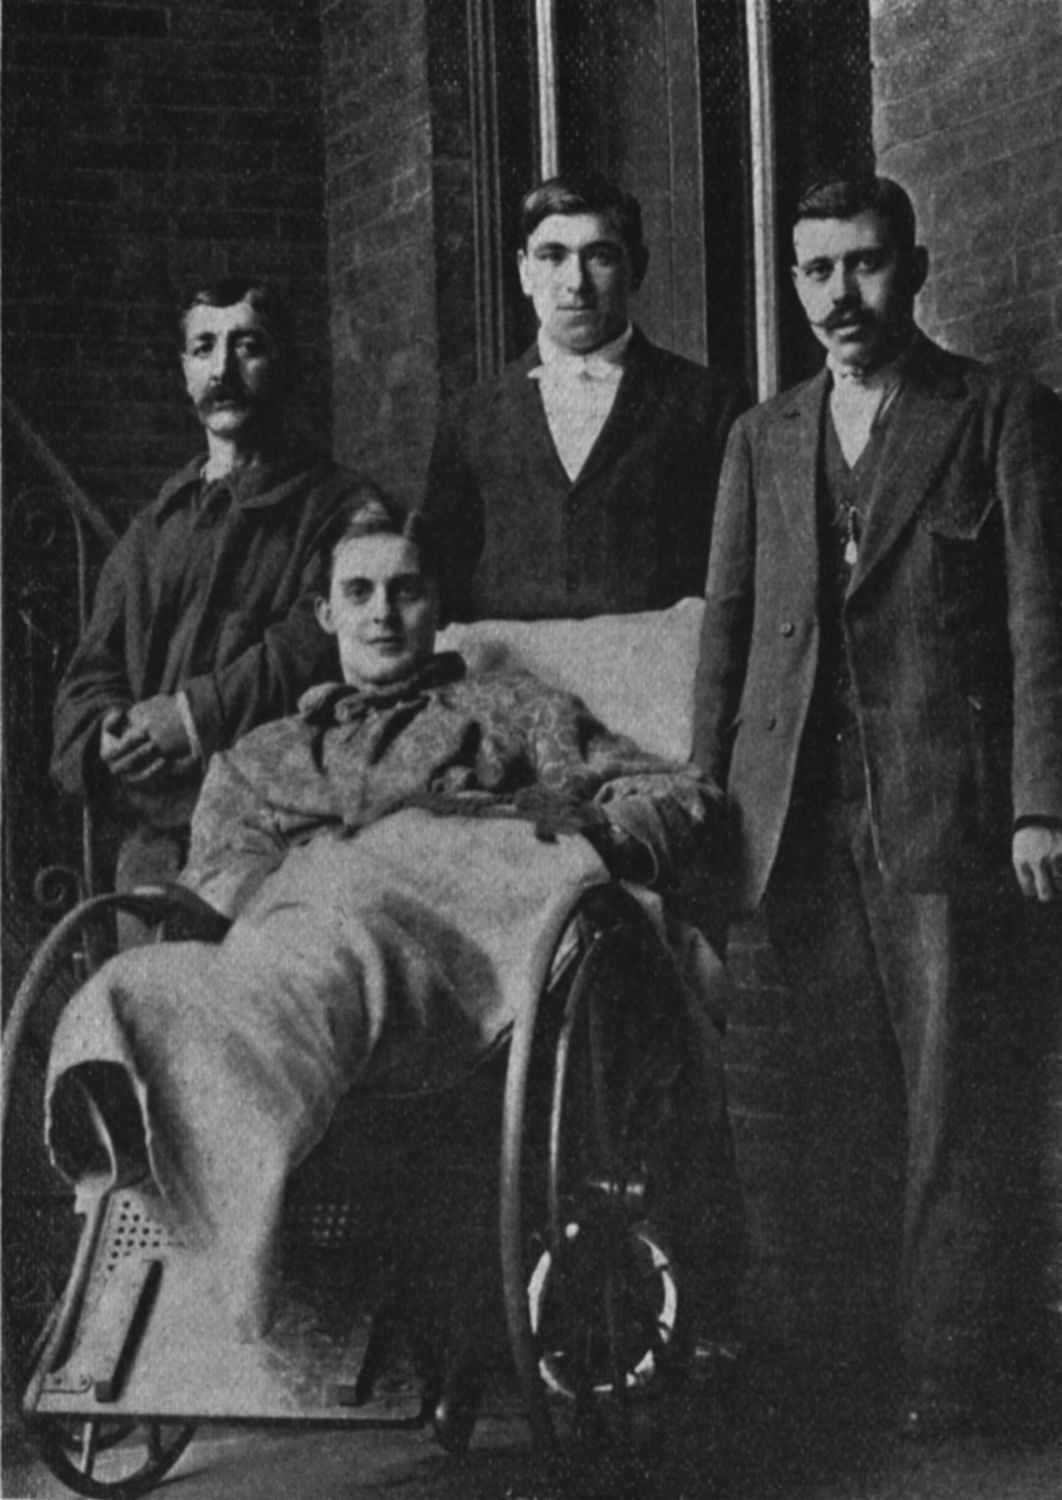 Thomas Whiteley, John Thompson and other survivors in New York